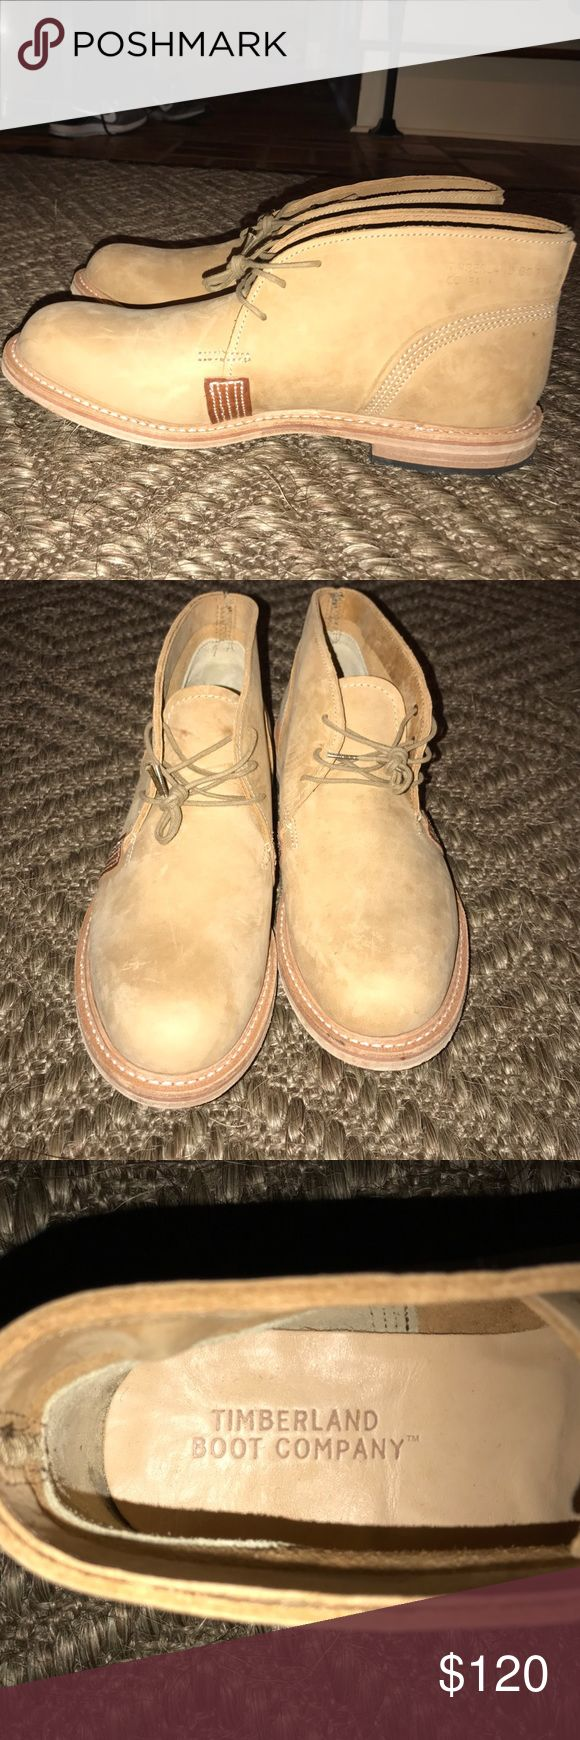 Timberland chukka boots Never worn without tags. Brand new perfect condition Timberland Shoes Chukka Boots